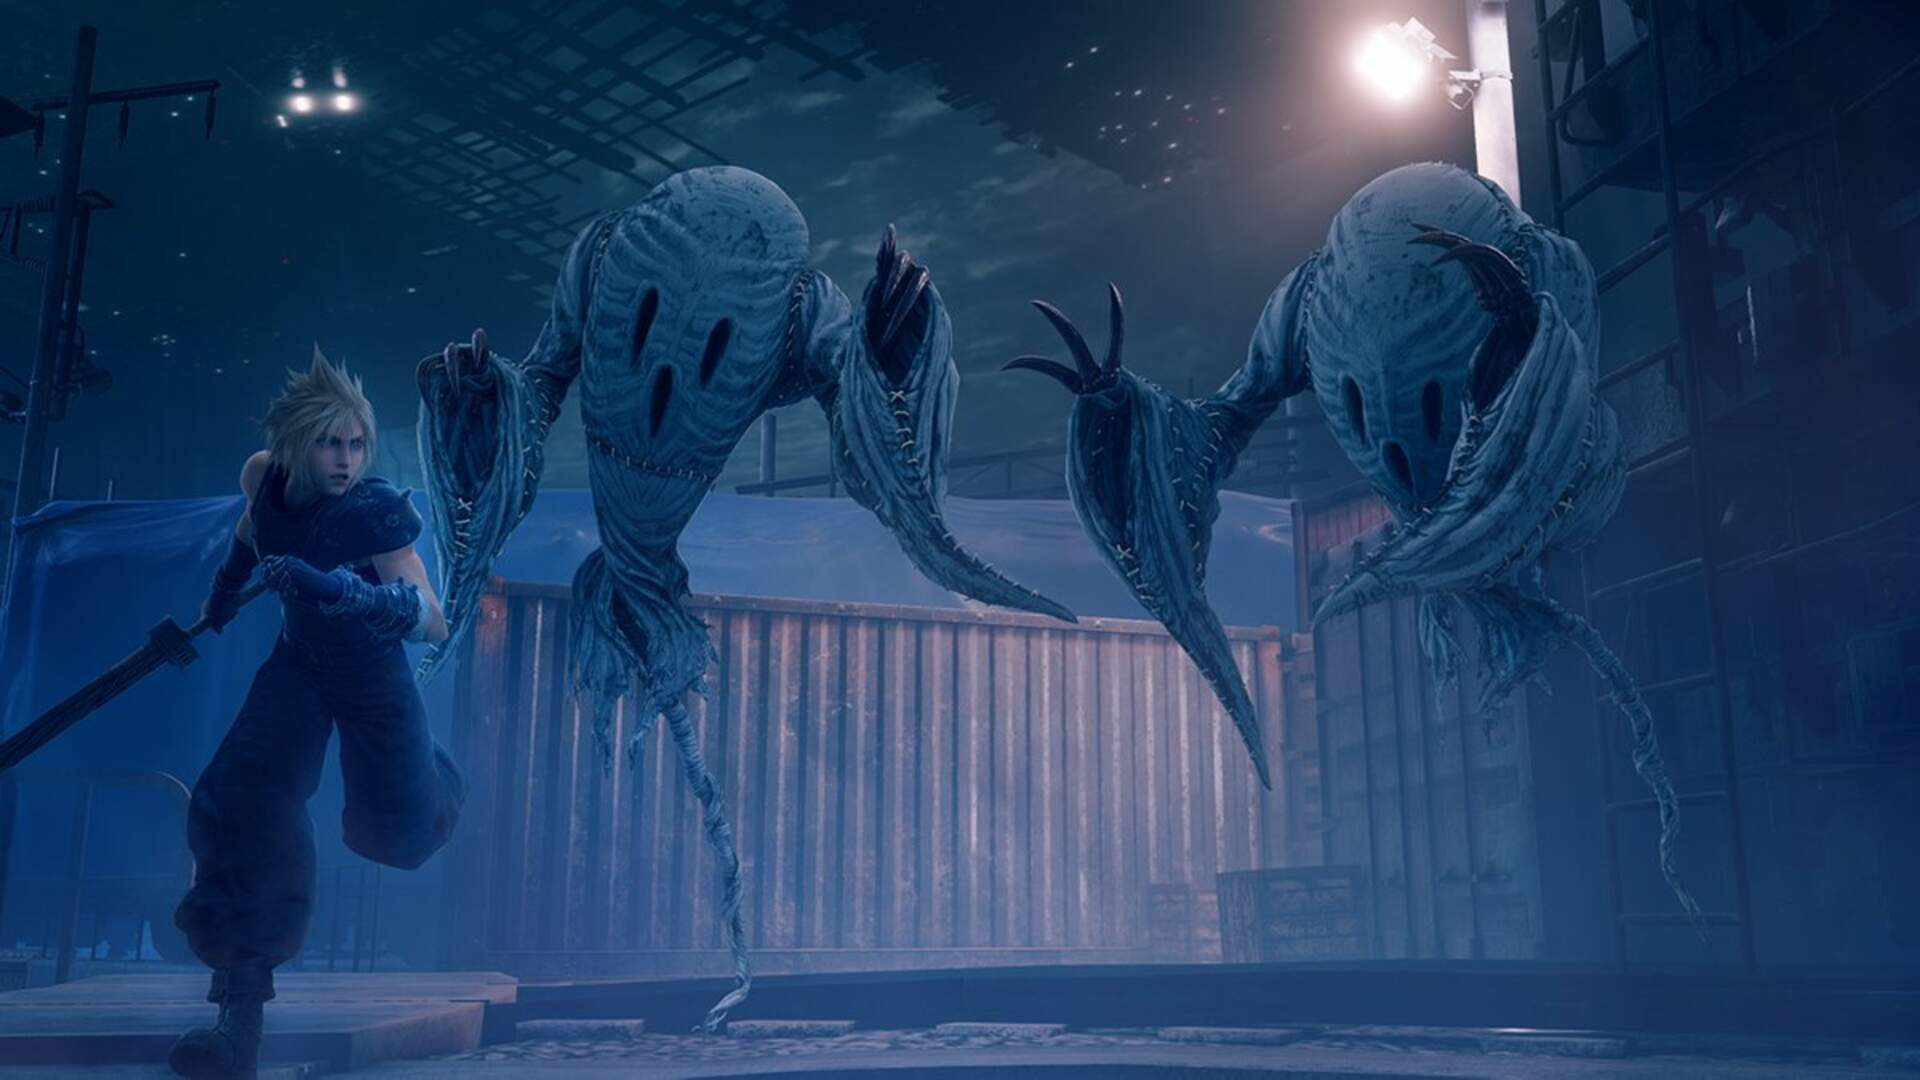 Final Fantasy 7 Remake Shows Off Spooky New Screenshot as a Halloween Treat